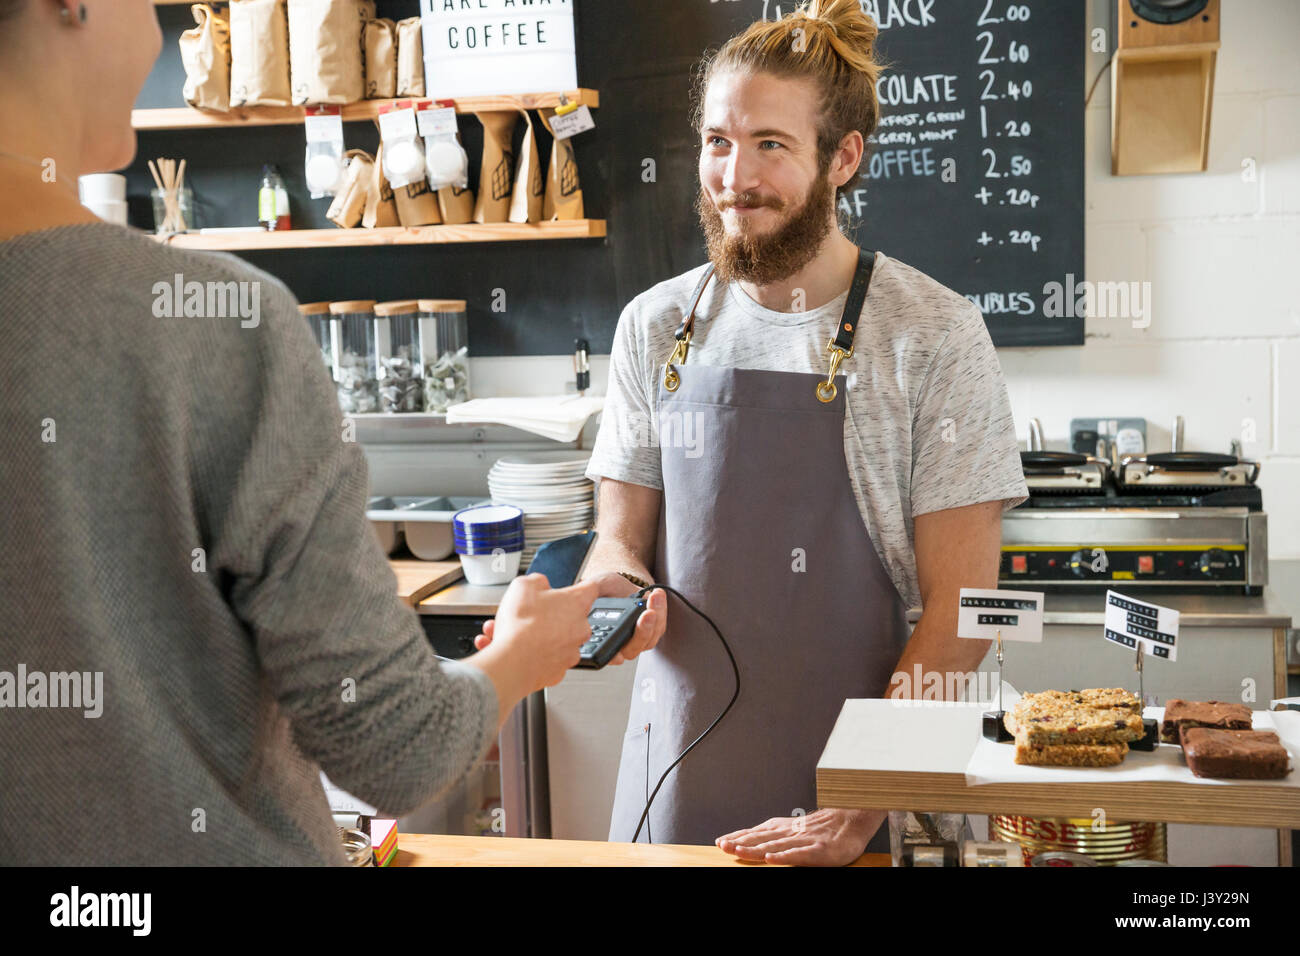 Customer paying contactless in a cafe at the counter - Stock Image